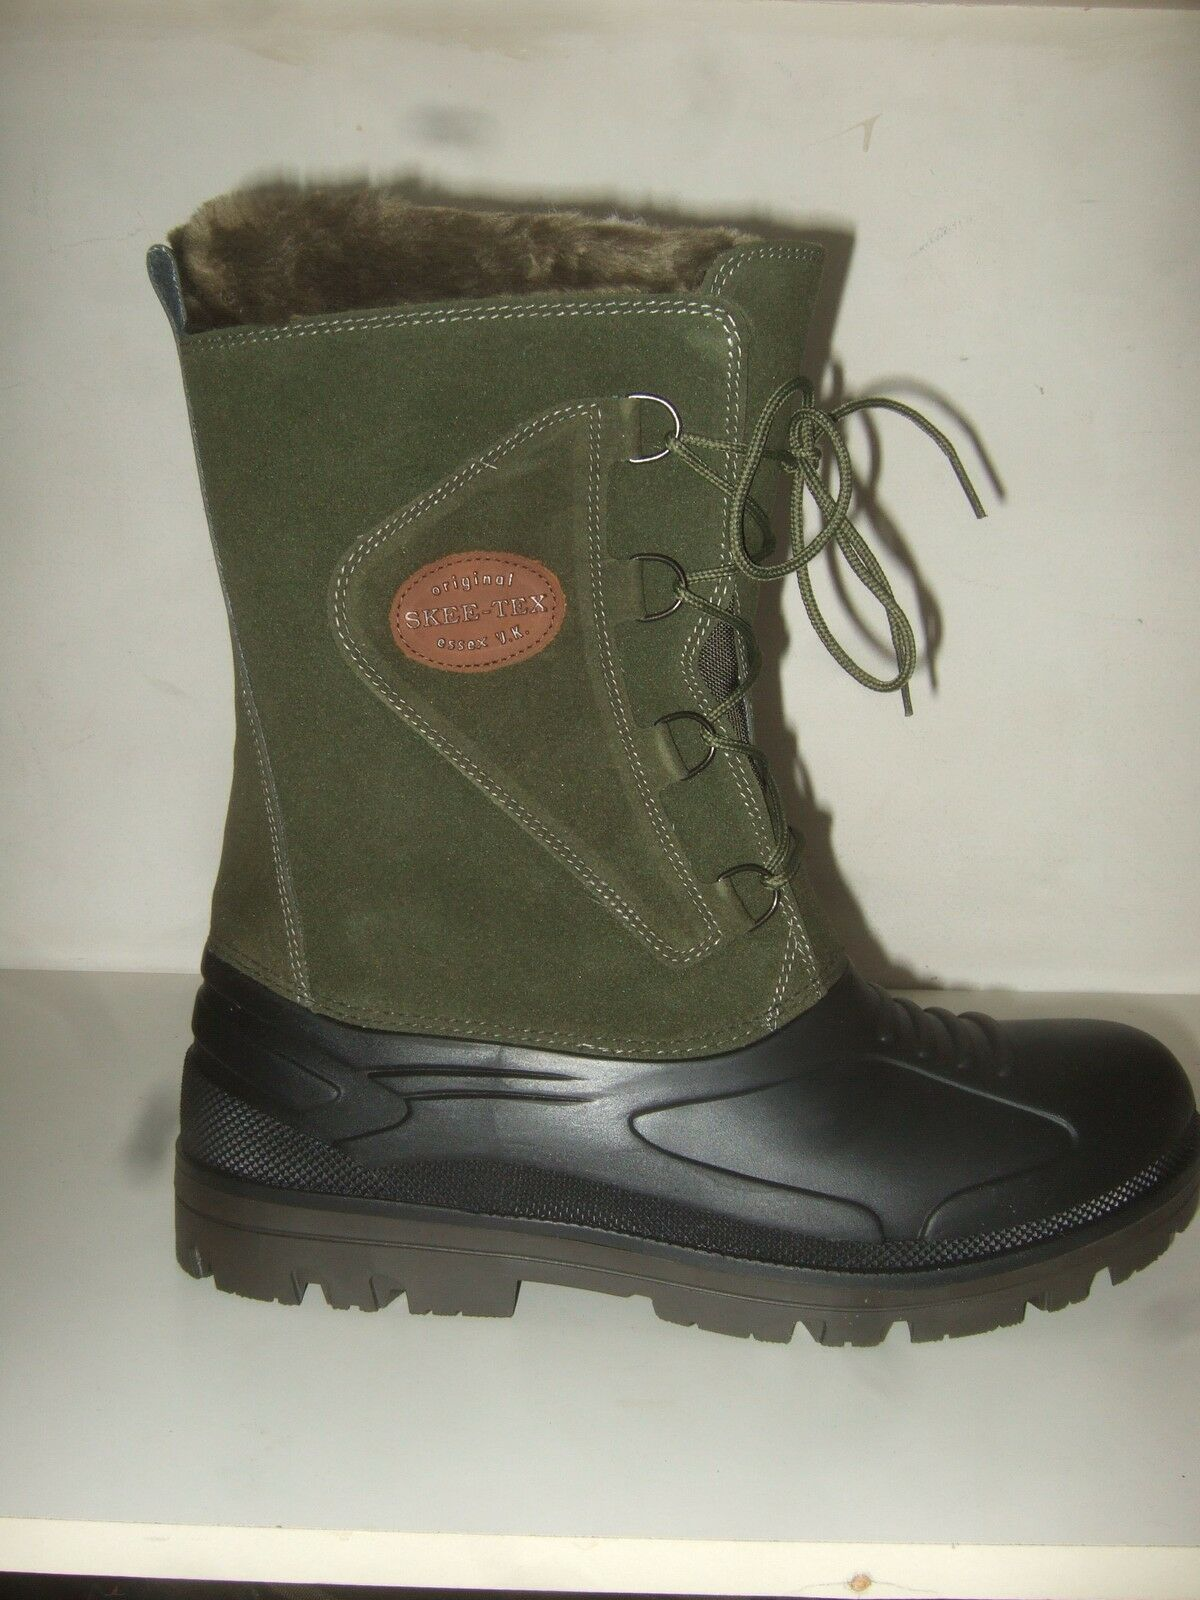 New Skeetex Field Boots  12-13  all in high quality and low price